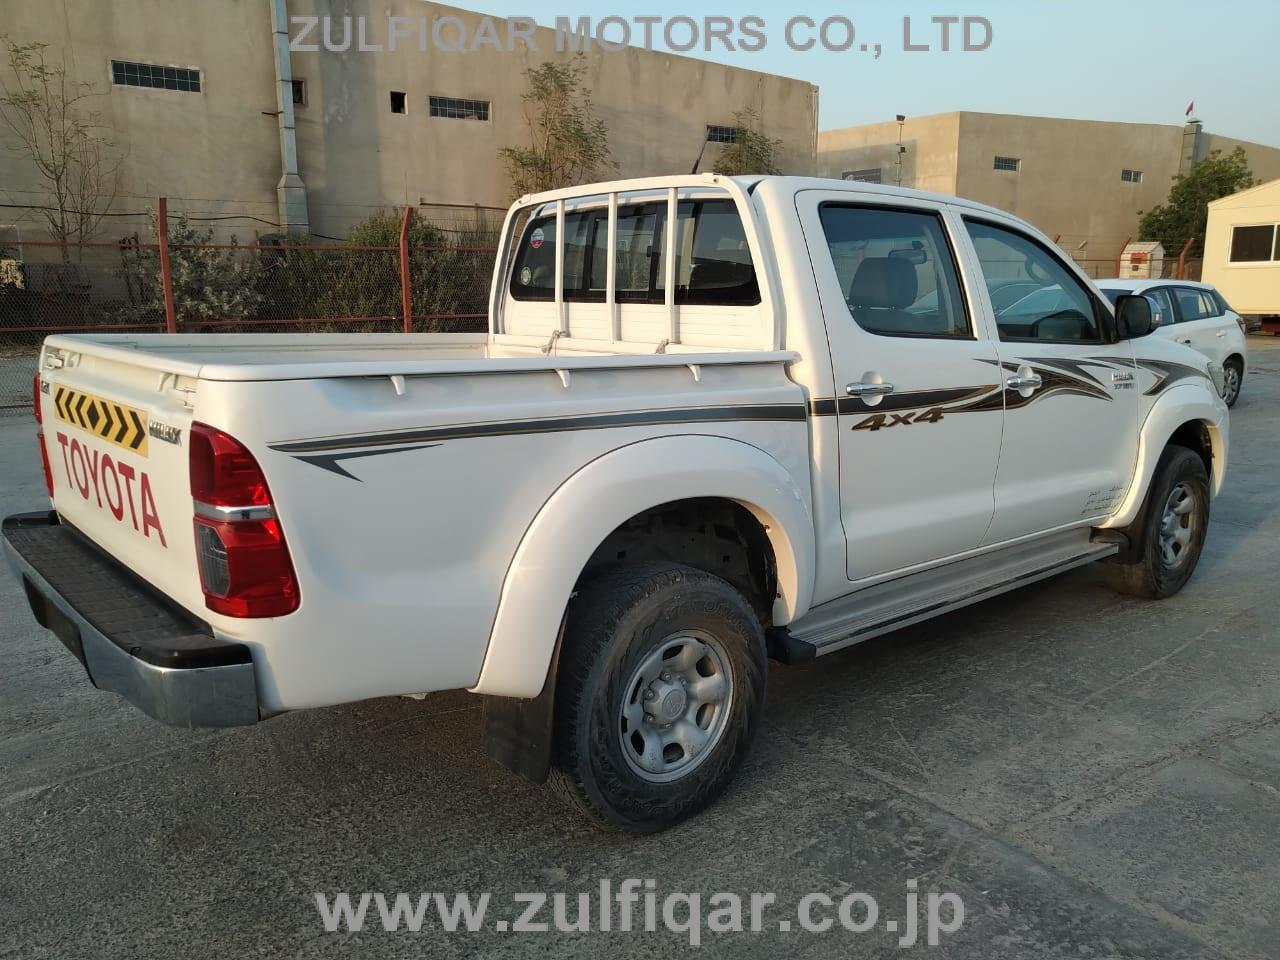 TOYOTA HILUX PICK UP 2015 Image 21